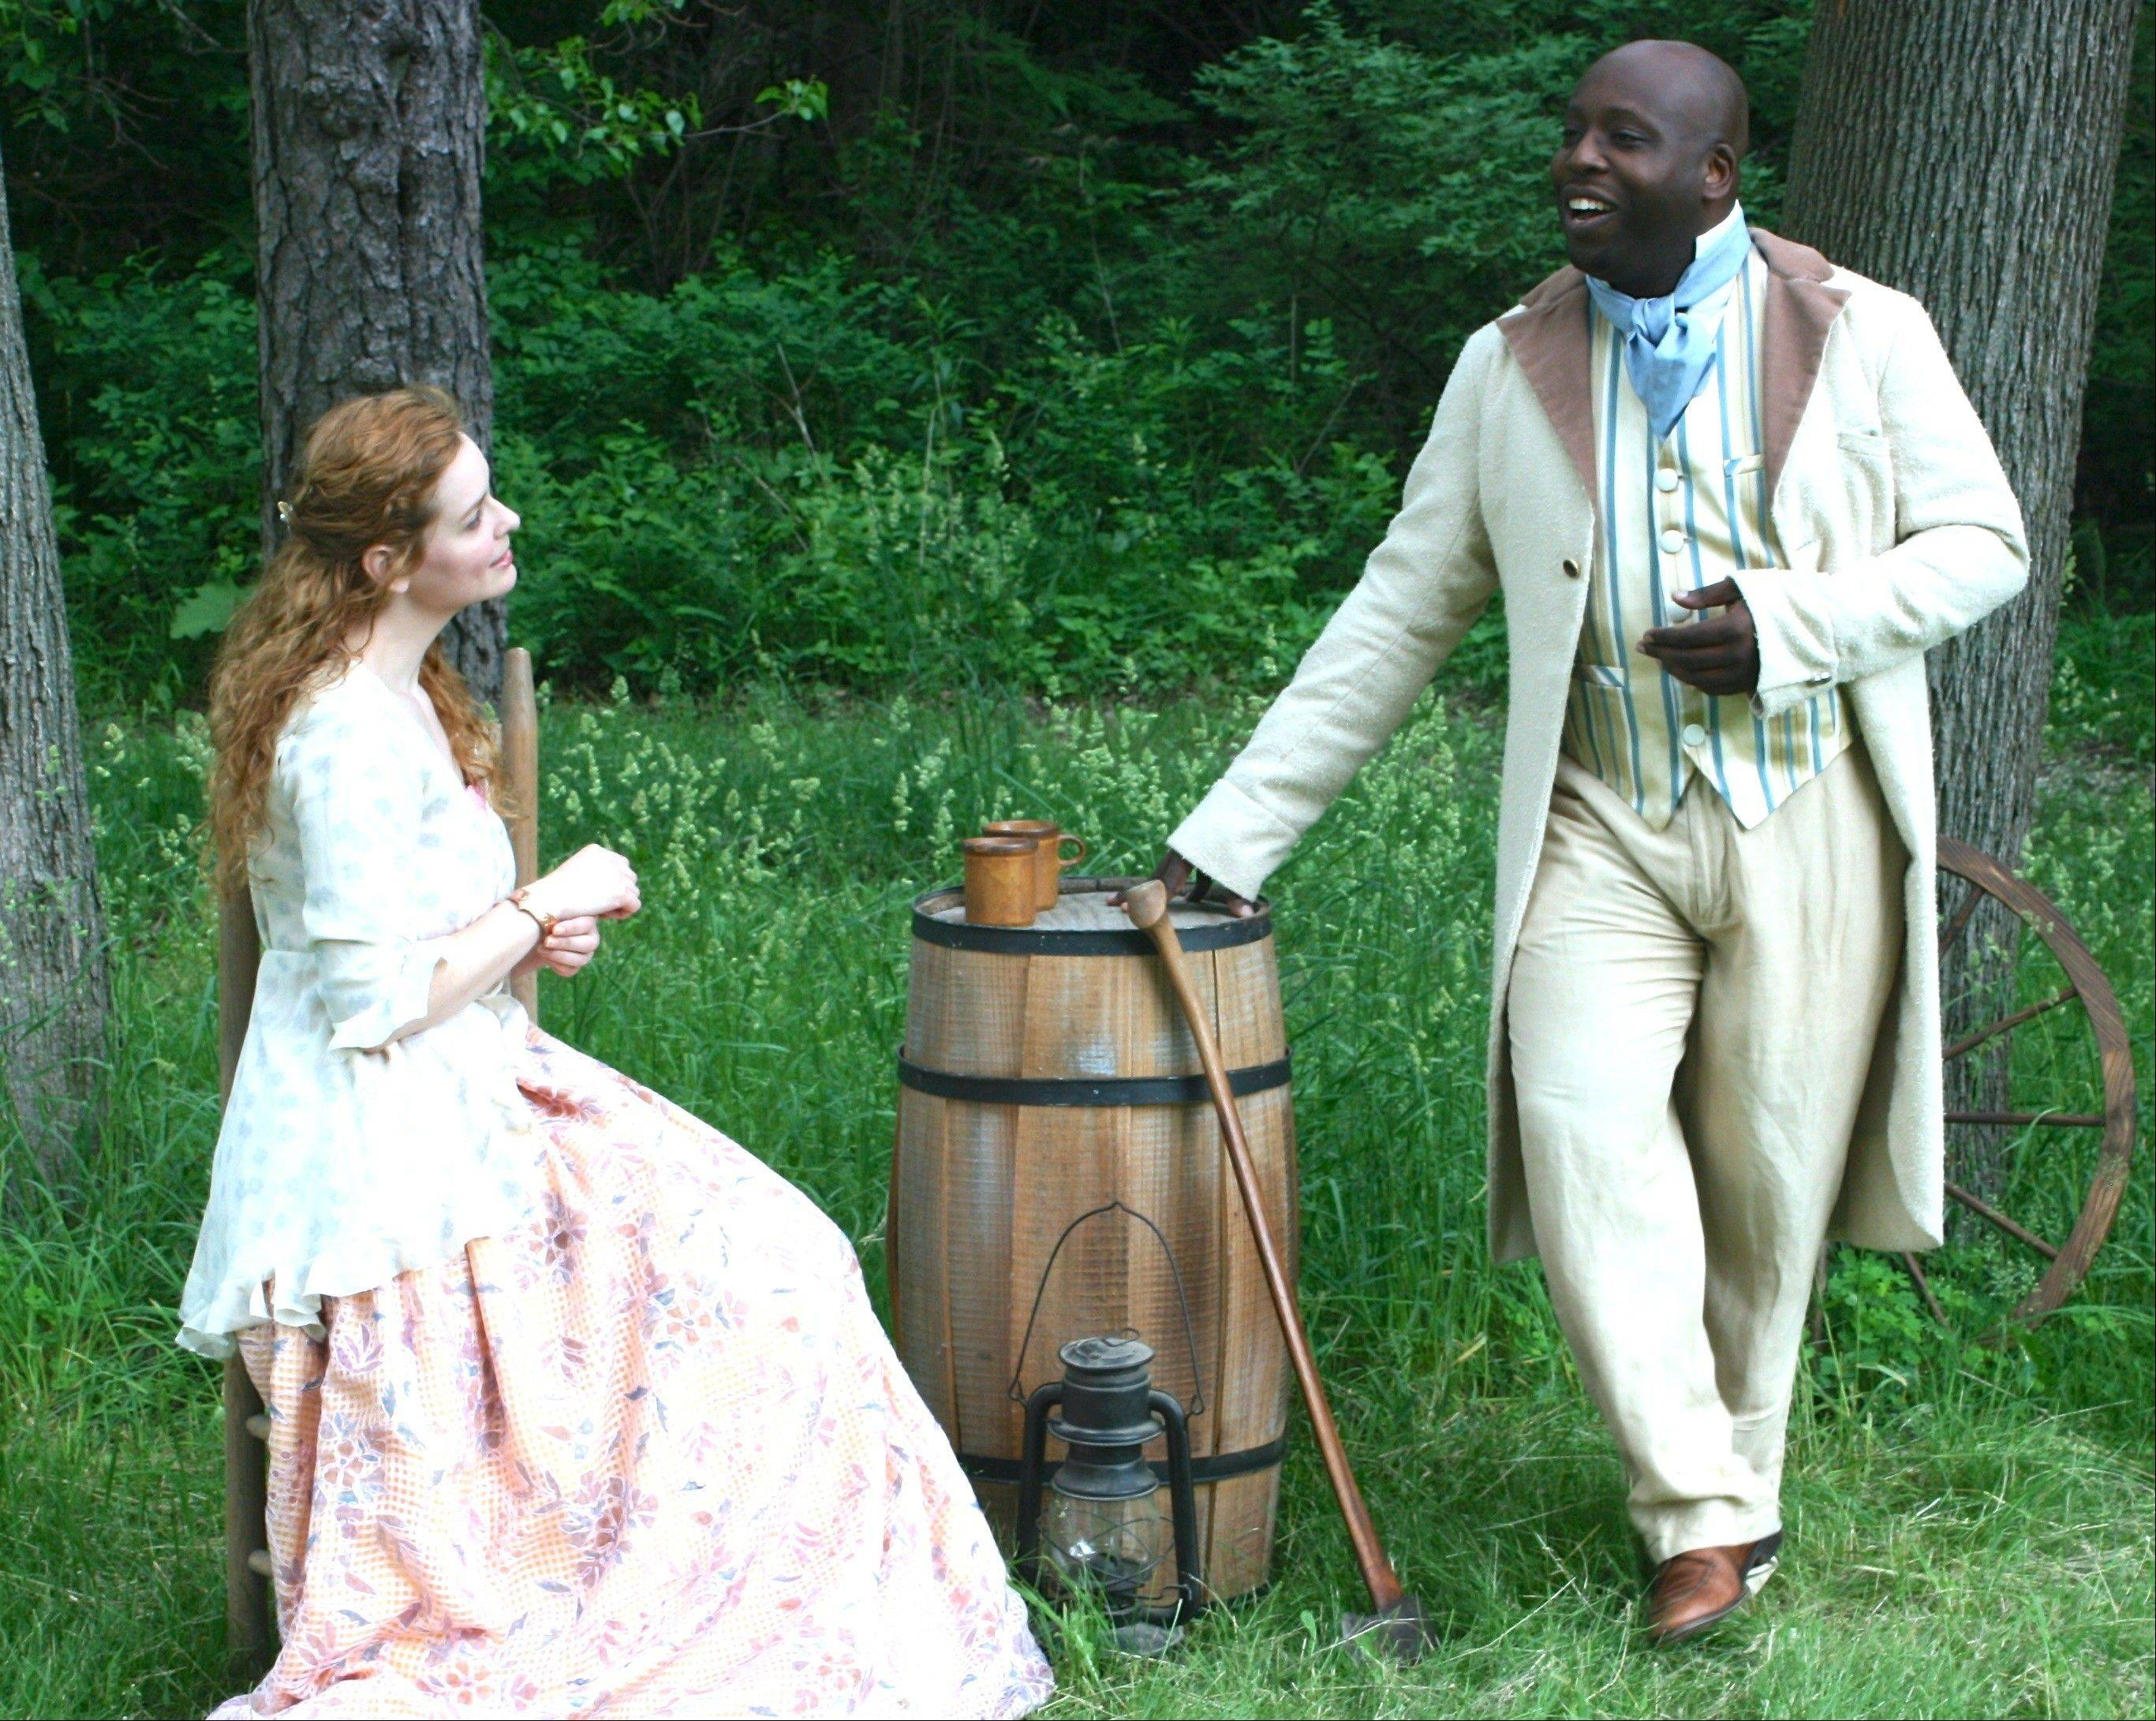 "Imogen (Kate McDermott) unsuspectingly welcomes Iachimo (James Earl Jones II), who has wagered that he can prove her to be an adultress, in First Folio Theatre's world premiere adaptation of ""Shakespeare's Cymbeline: A Folk Tale with Music"" at the Mayslake Peabody Estate in Oak Brook."